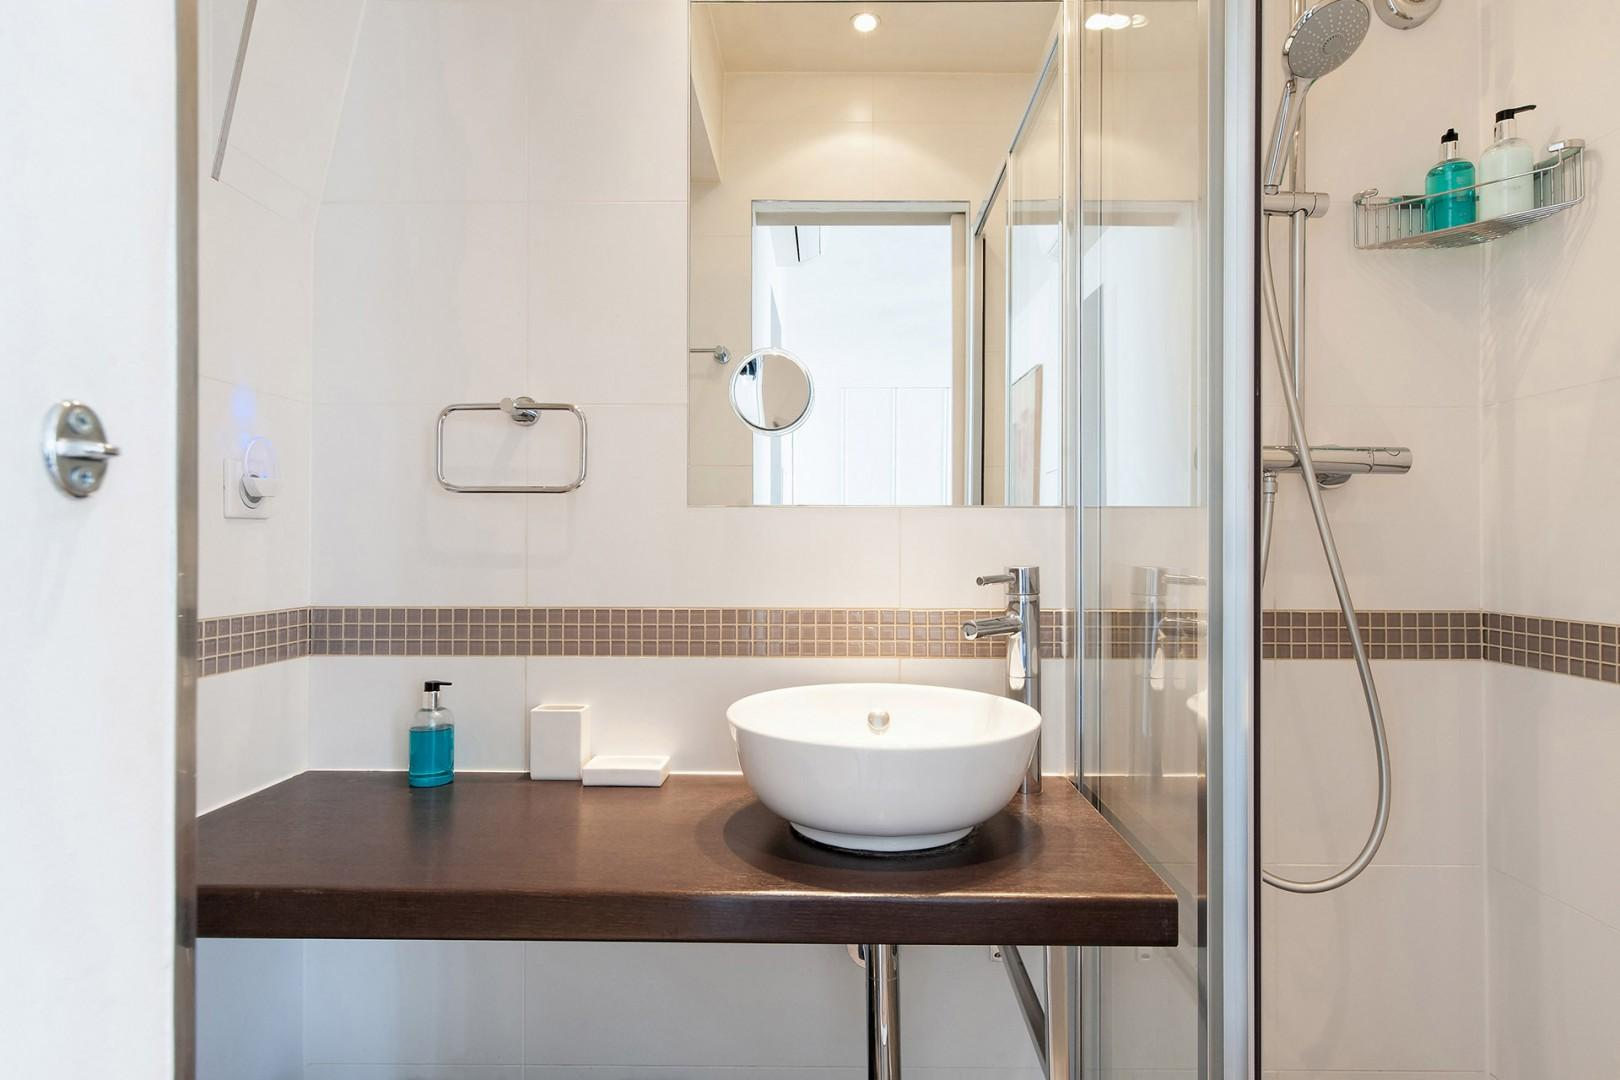 CMS-16-(Bathroom 2 comes with a shower, toilet and sink.)-12-palette-bathroom